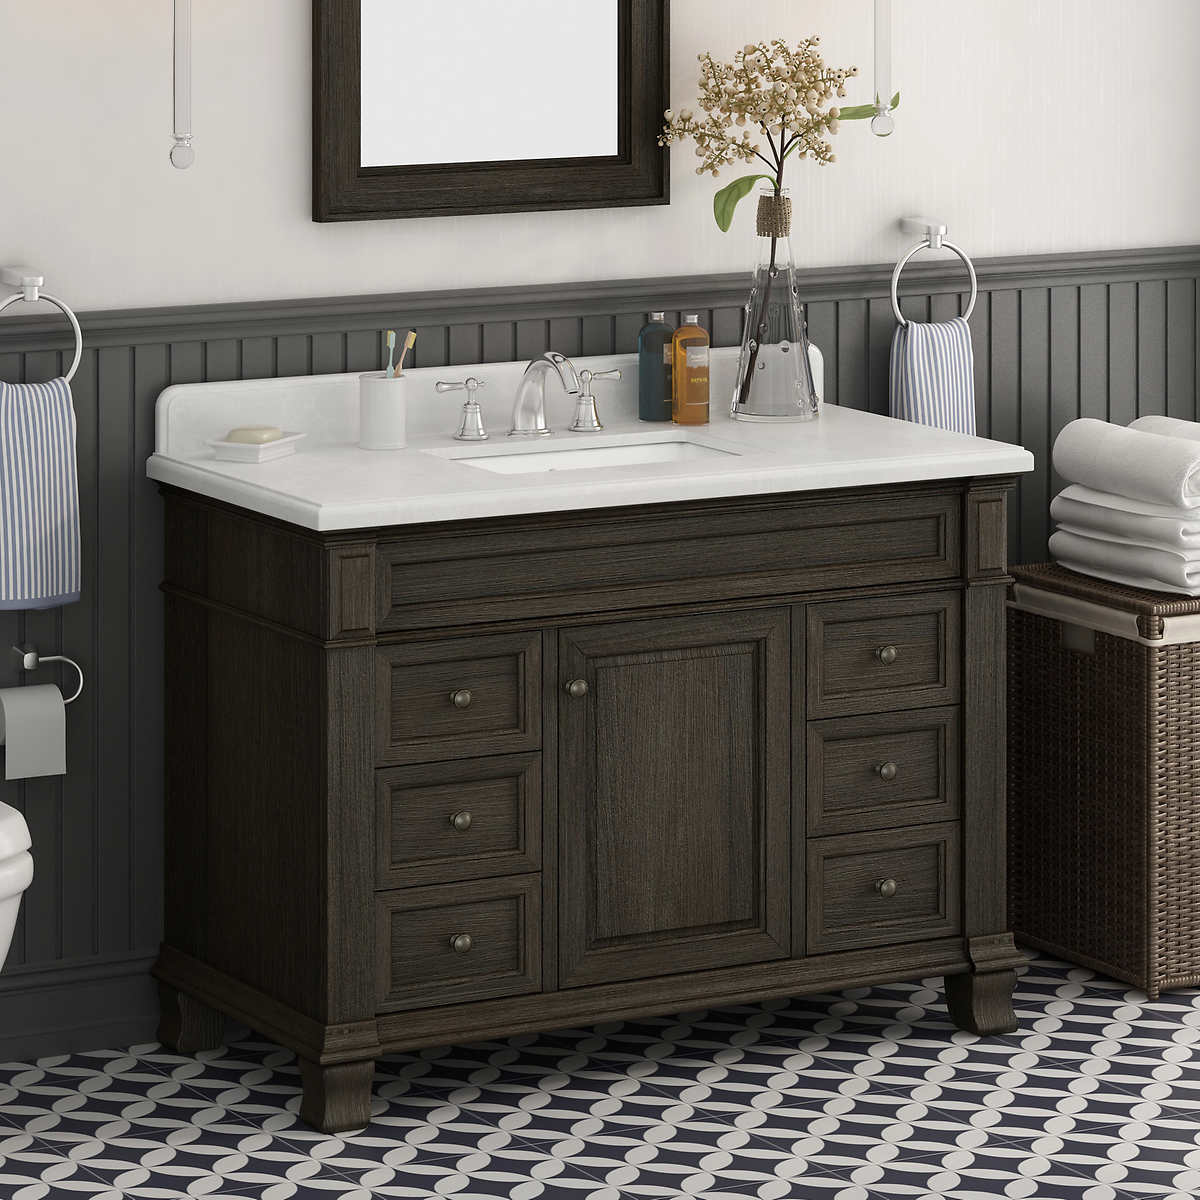 Bathroom Sinks With Vanity single sink vanities | costco